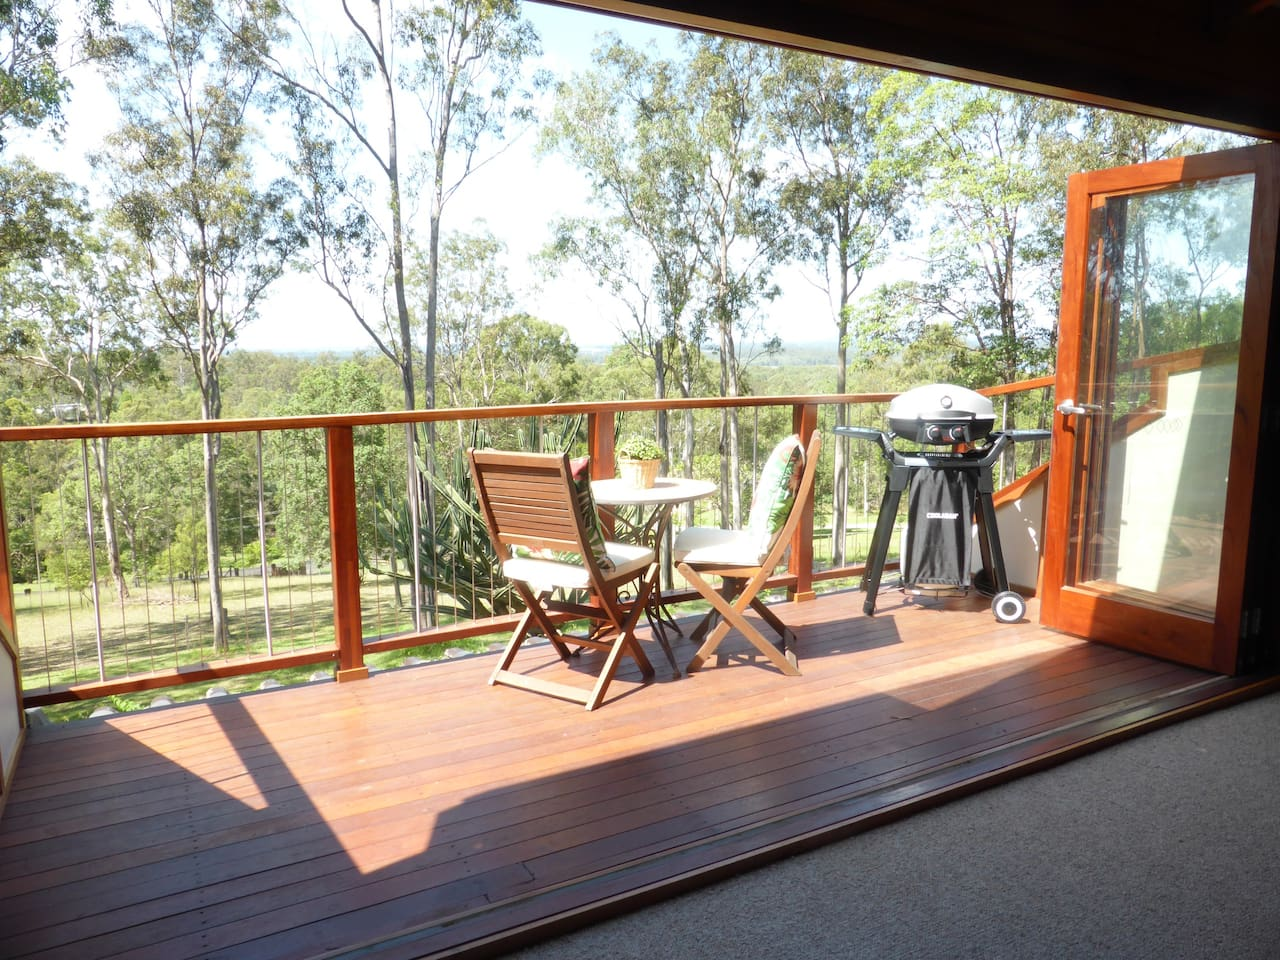 Private balcony with awesome views! Enjoy relaxing and BBQ.